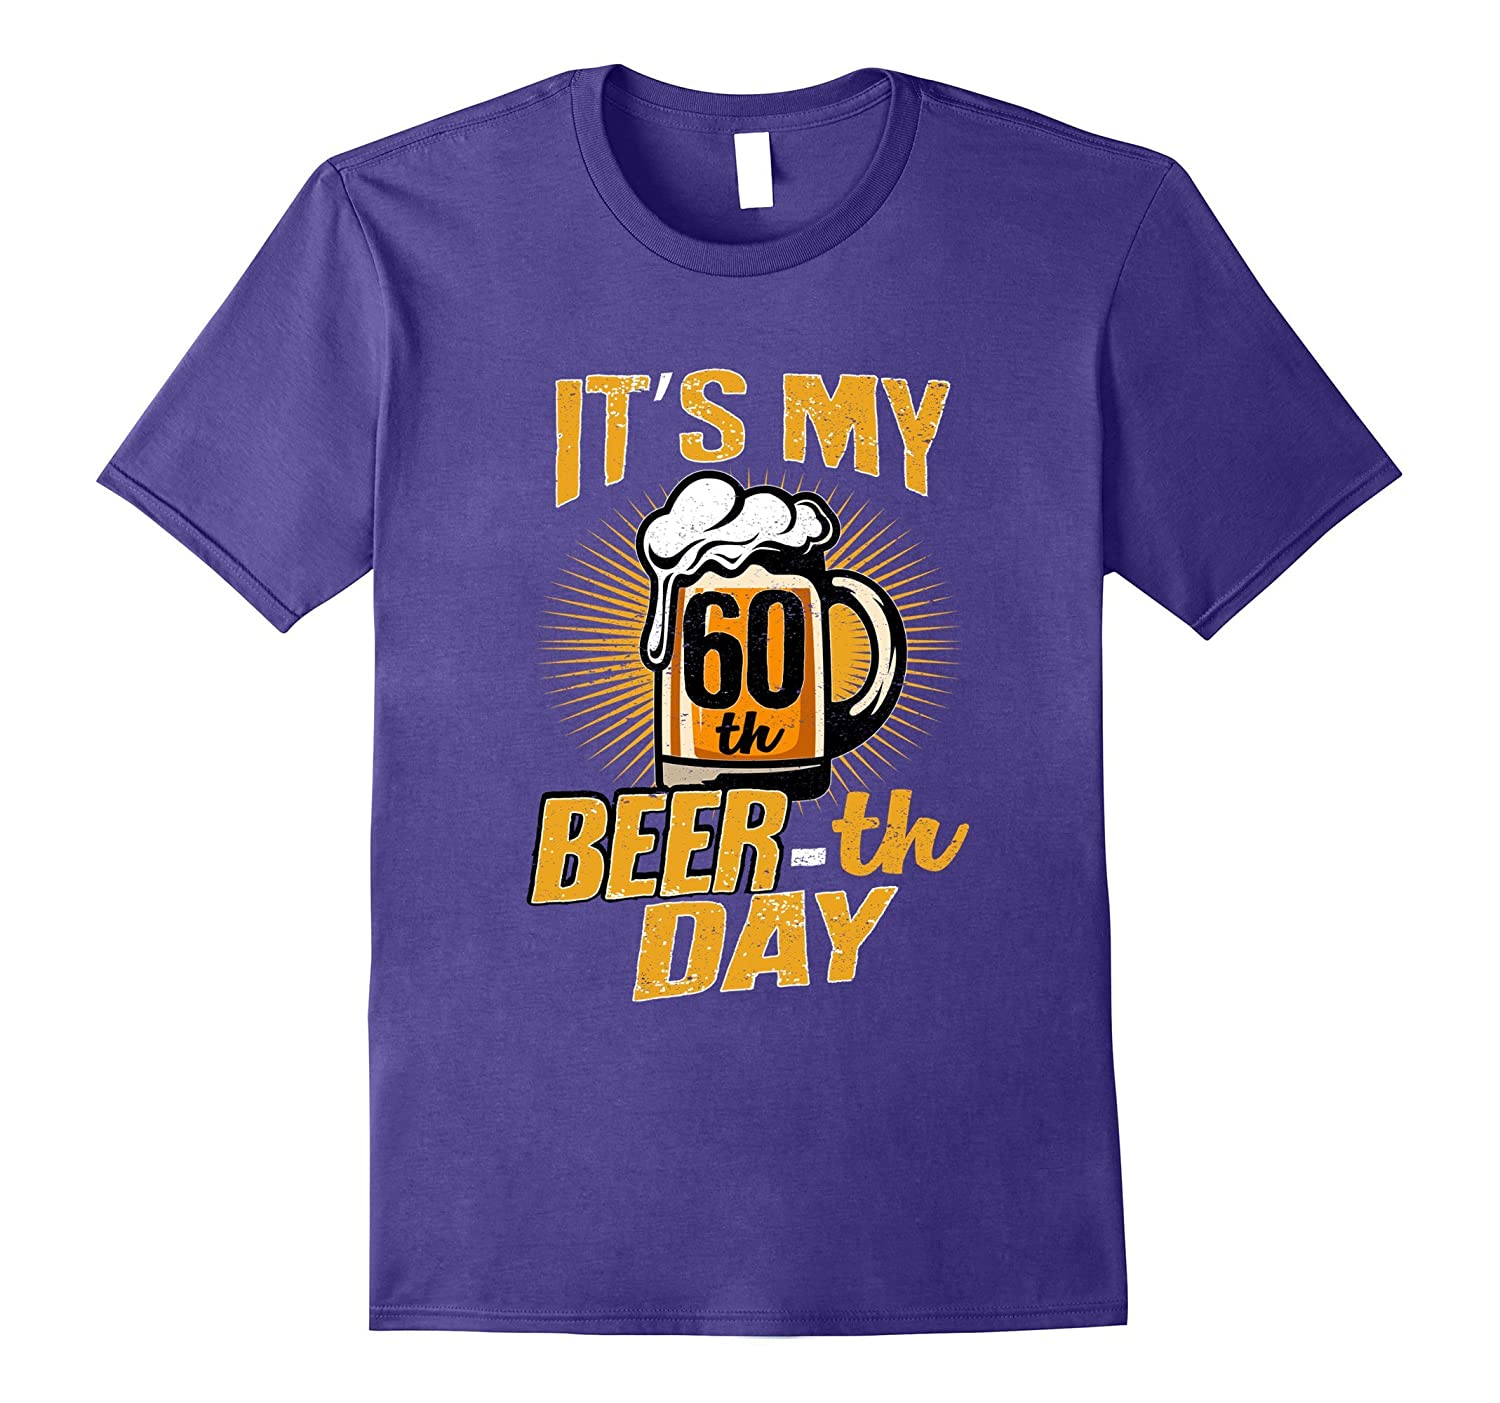 60th Beer-th Day Funny Birthday Beer Pun T-Shirt Vintage-Art